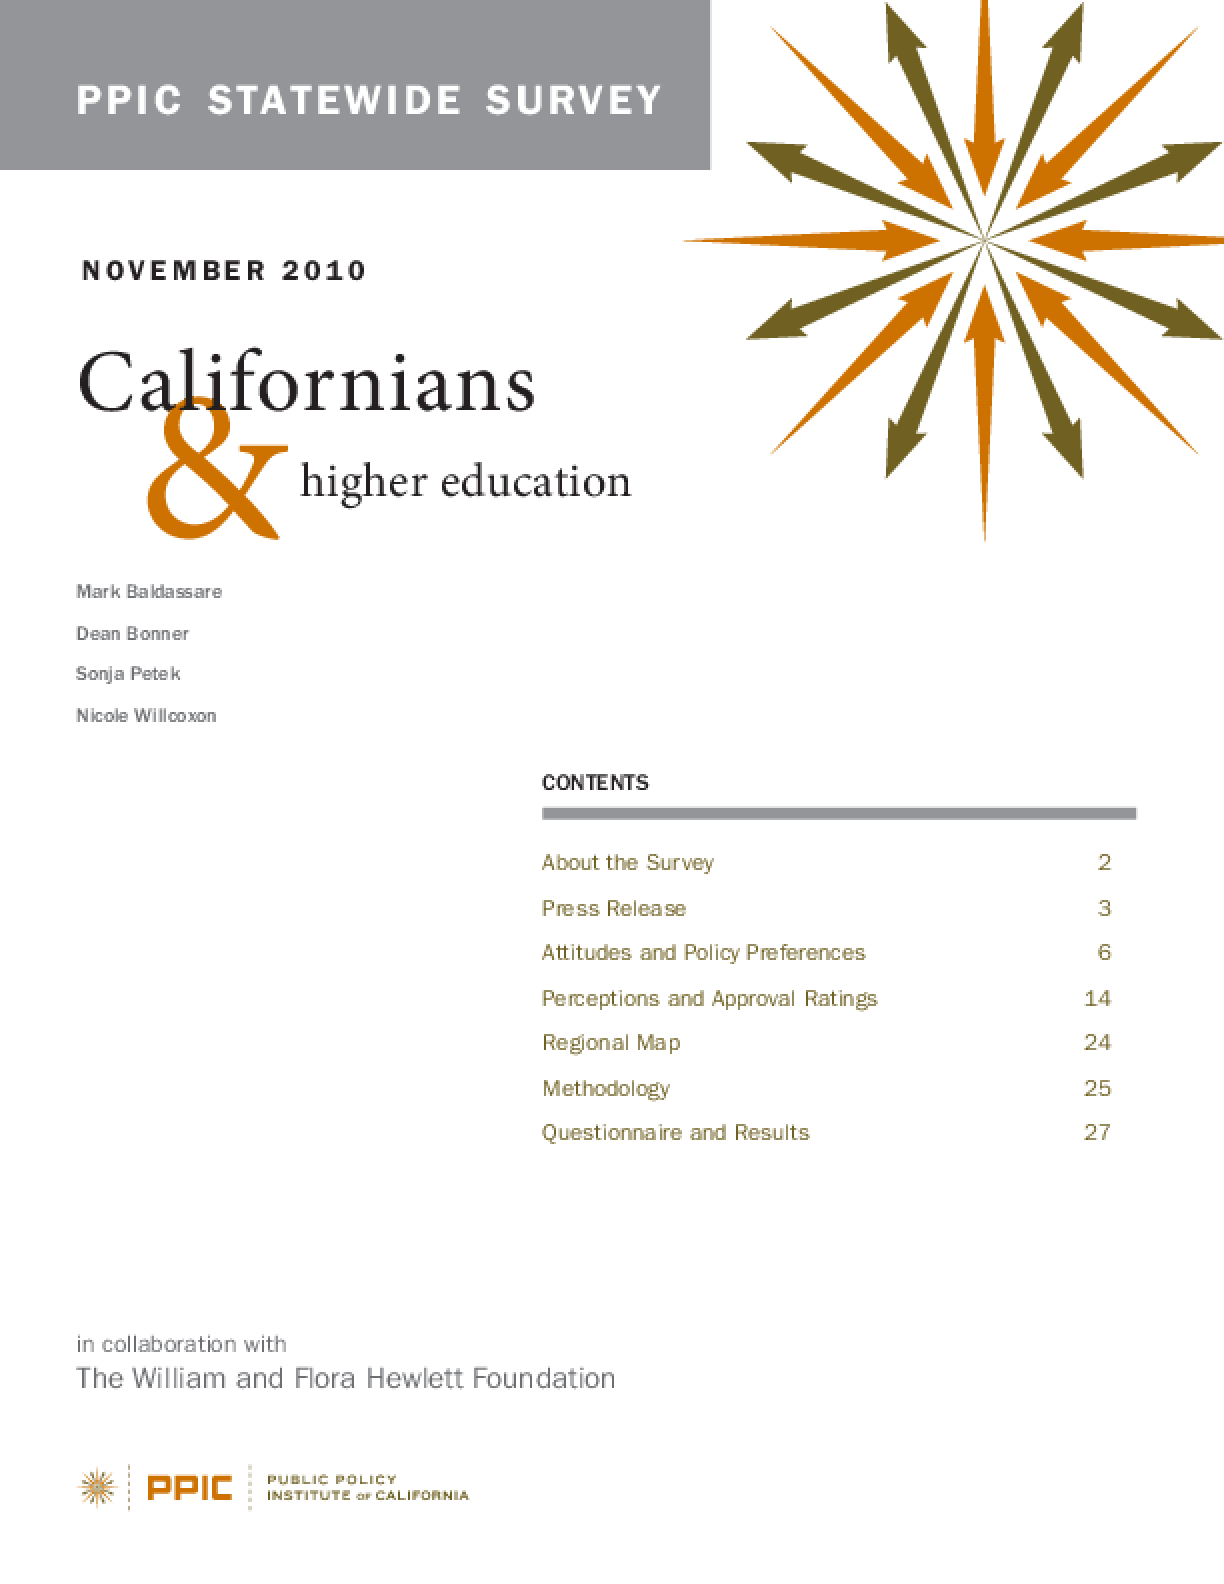 PPIC Statewide Survey: Californians and Higher Education 2010